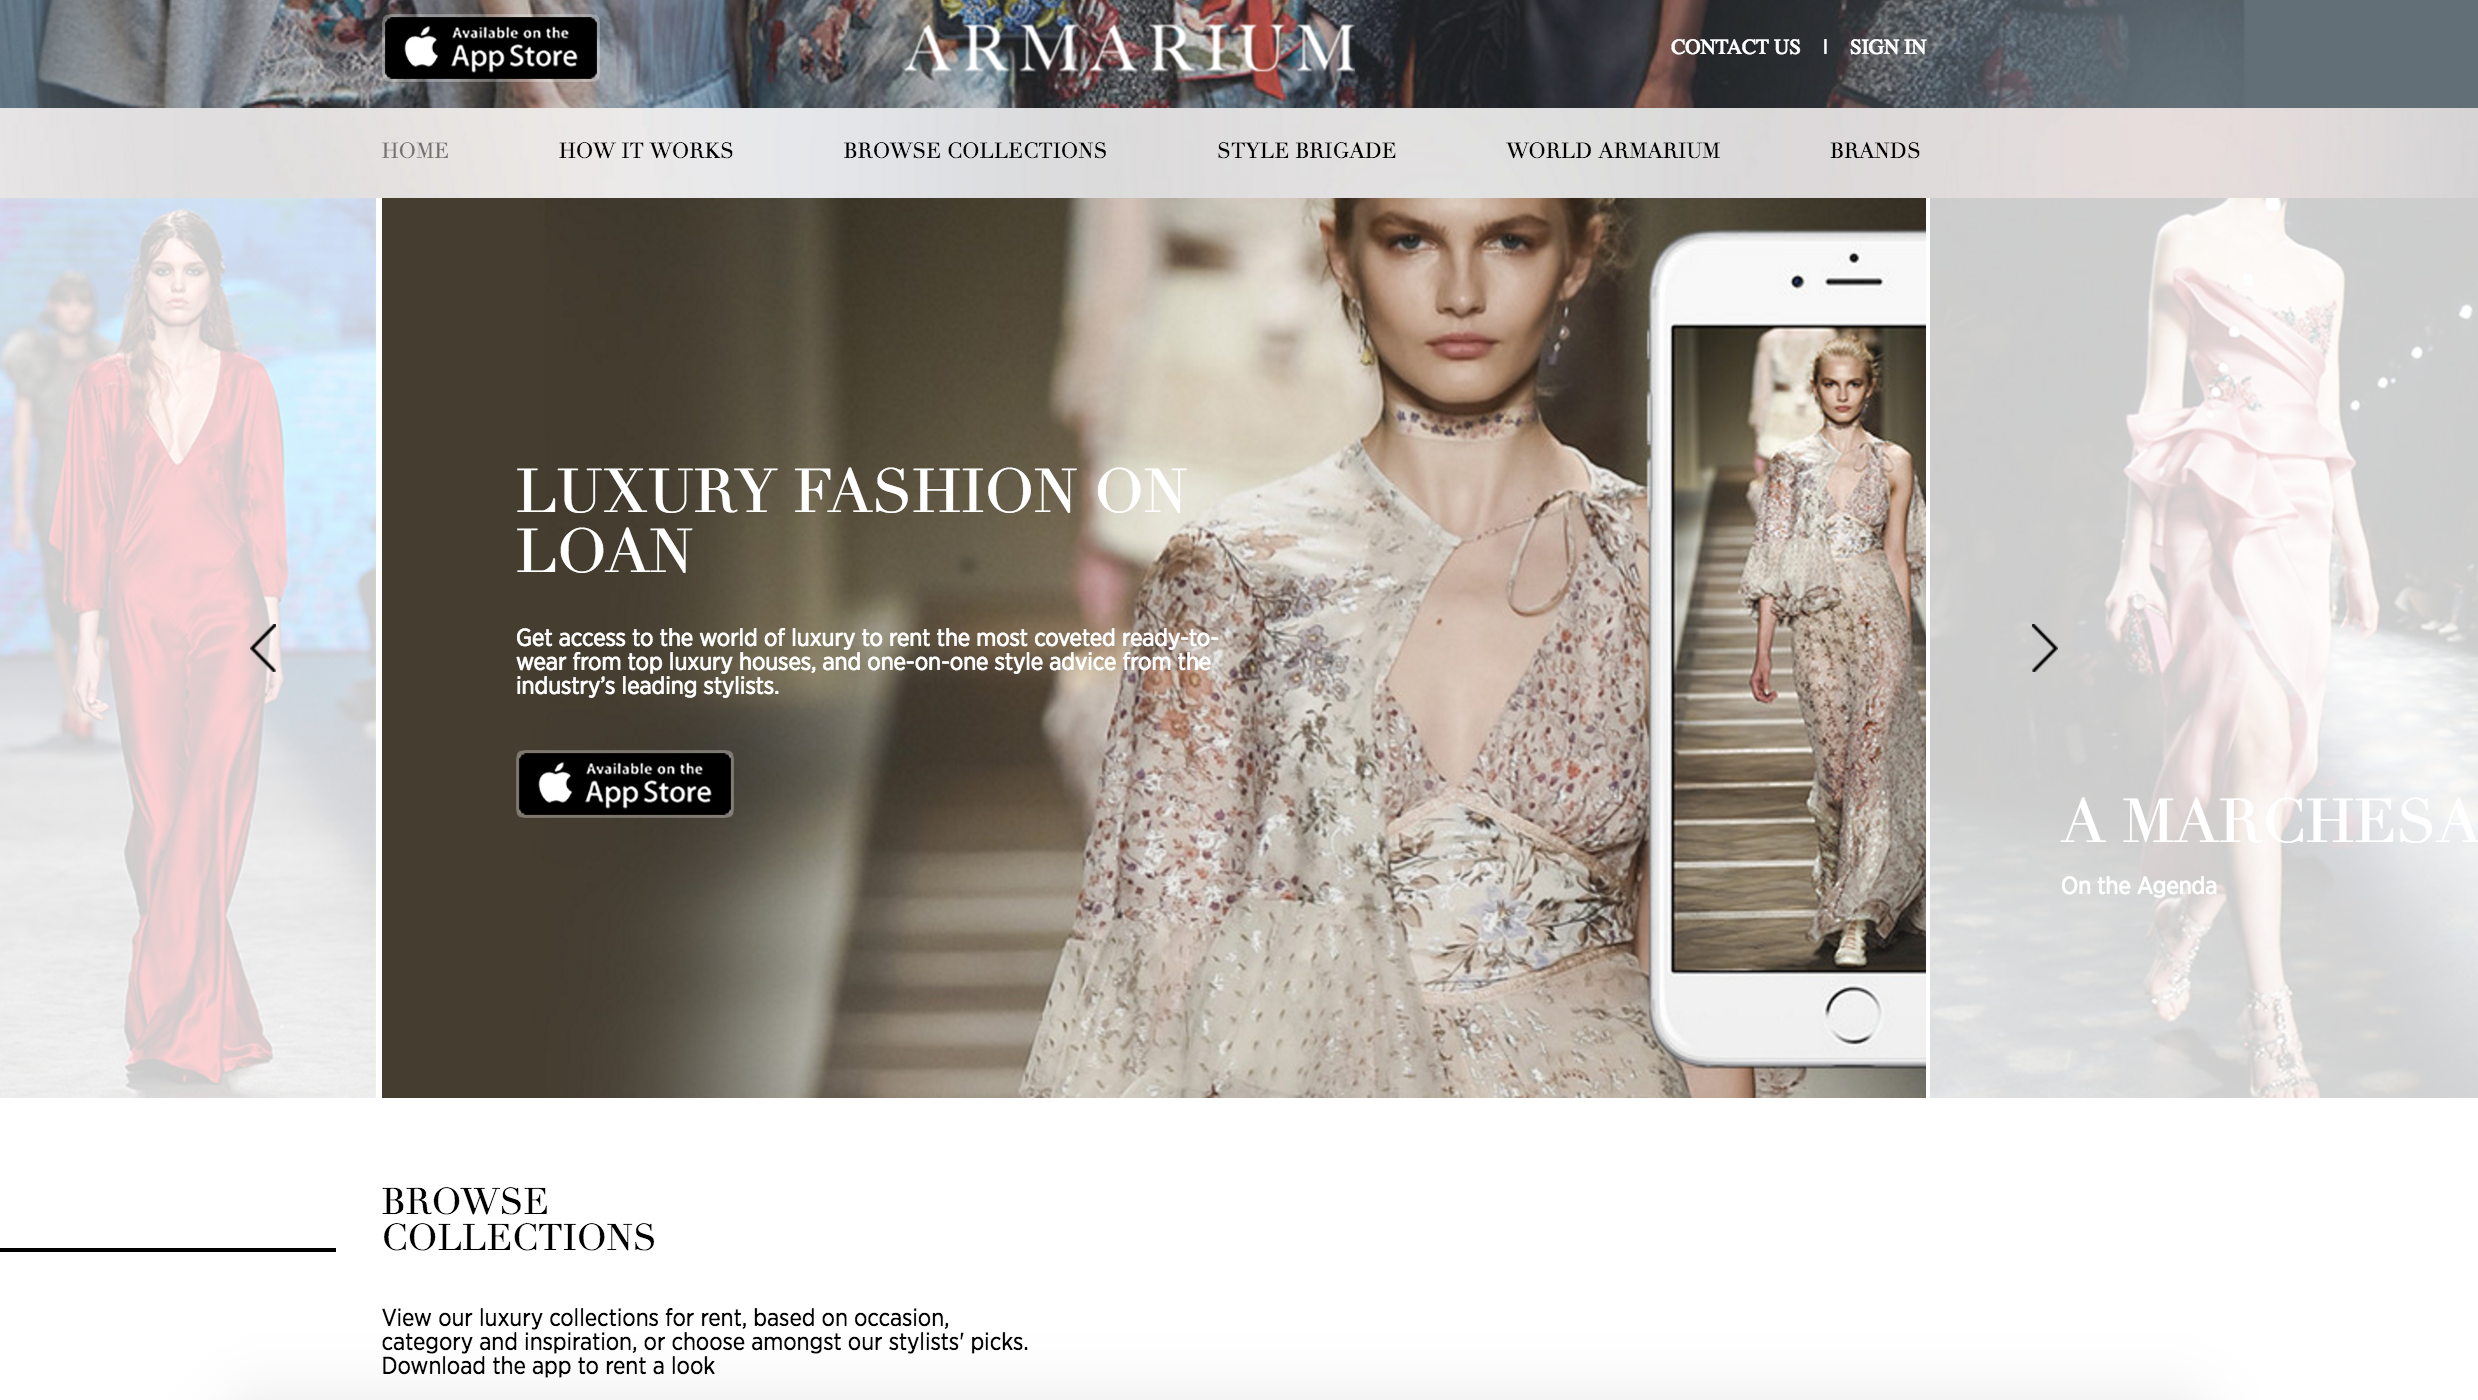 Luxury fashion on loan, by Armarium.com